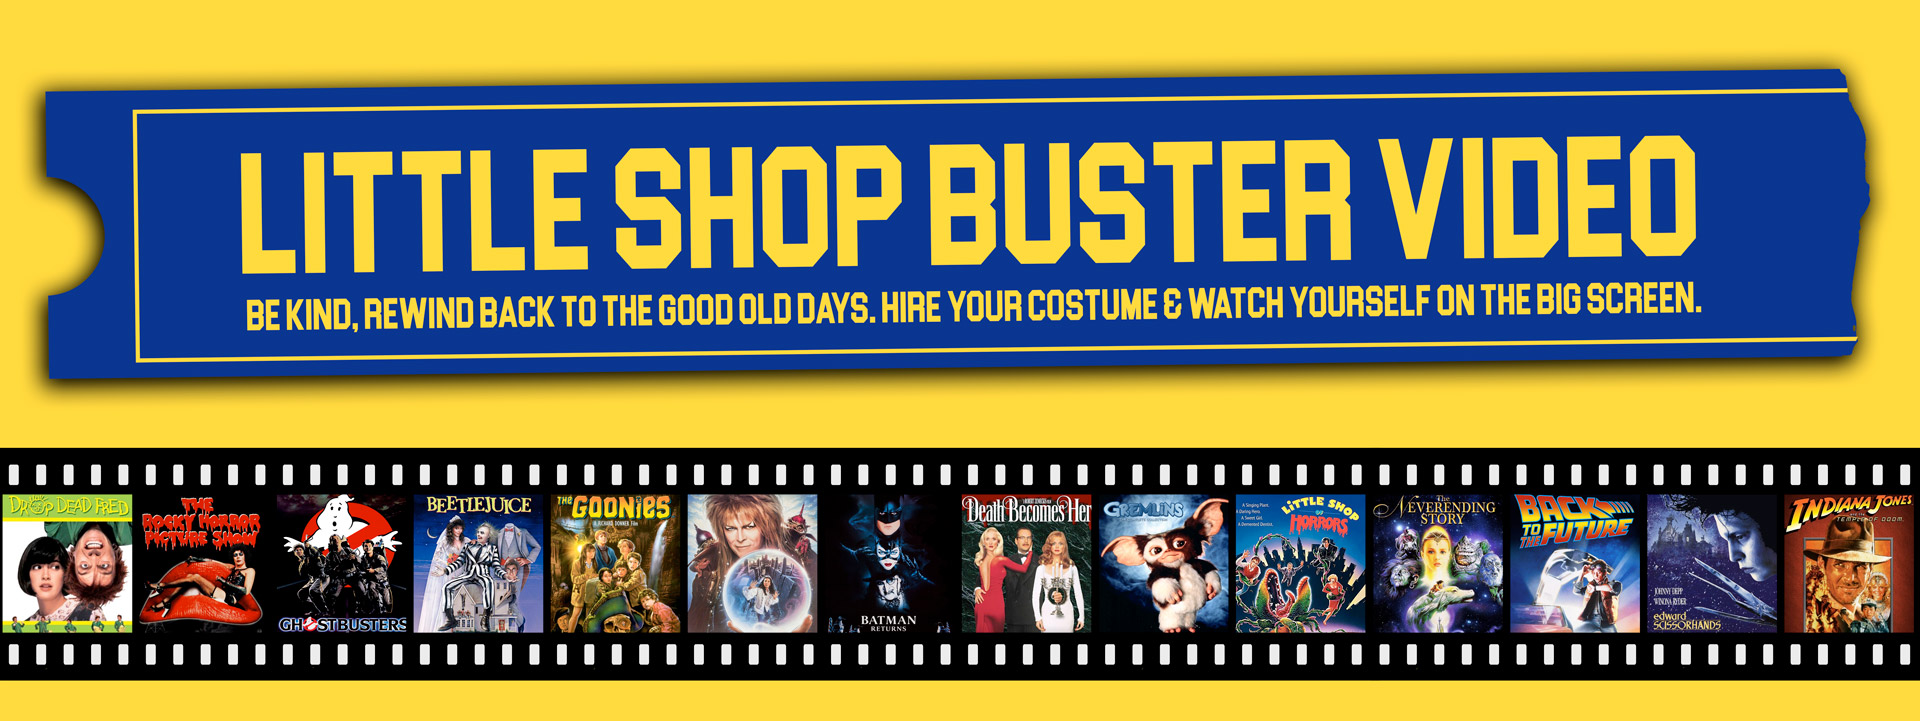 Little Shop Buster Video - Cult Classic Movies